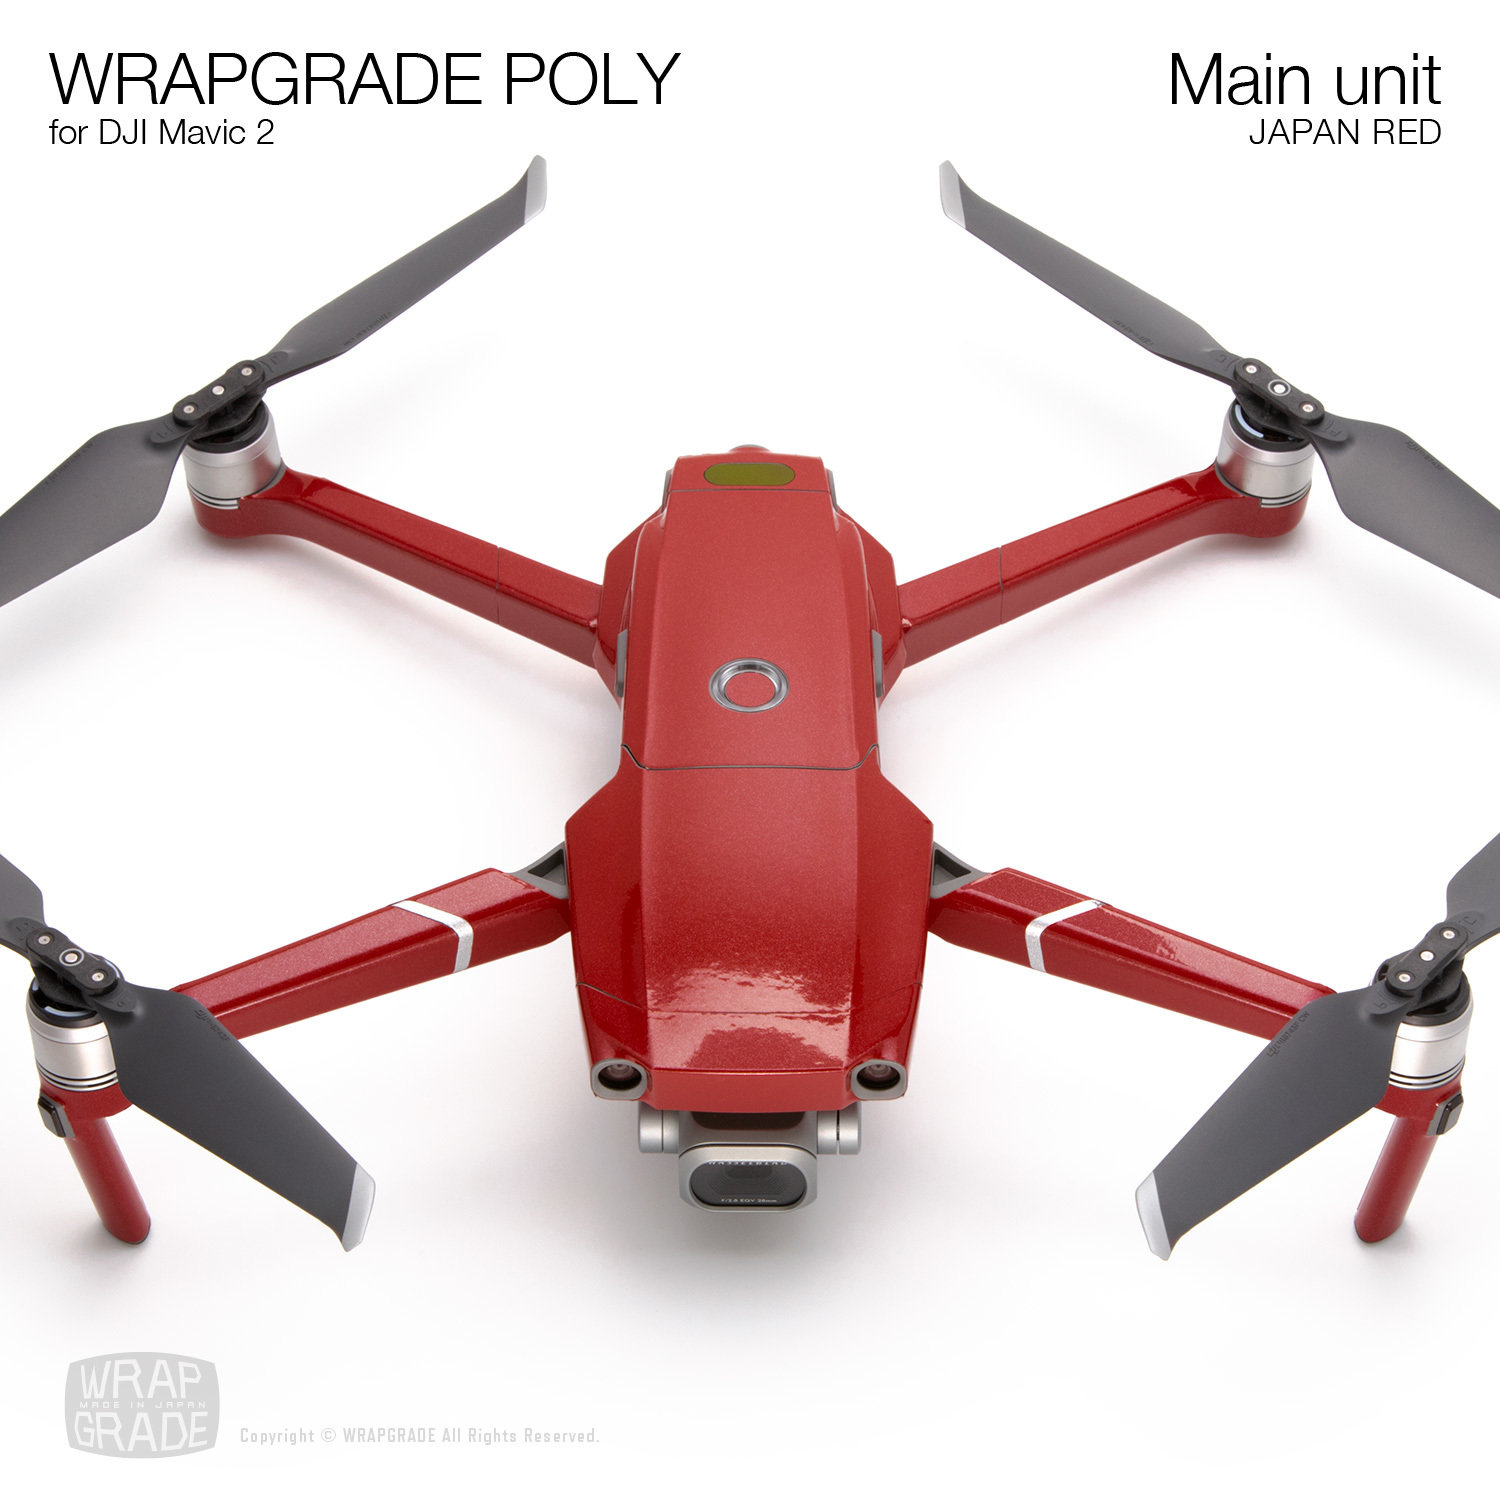 Wrapgrade Poly Skin for DJI Mavic 2 | Main unit (JAPAN RED)